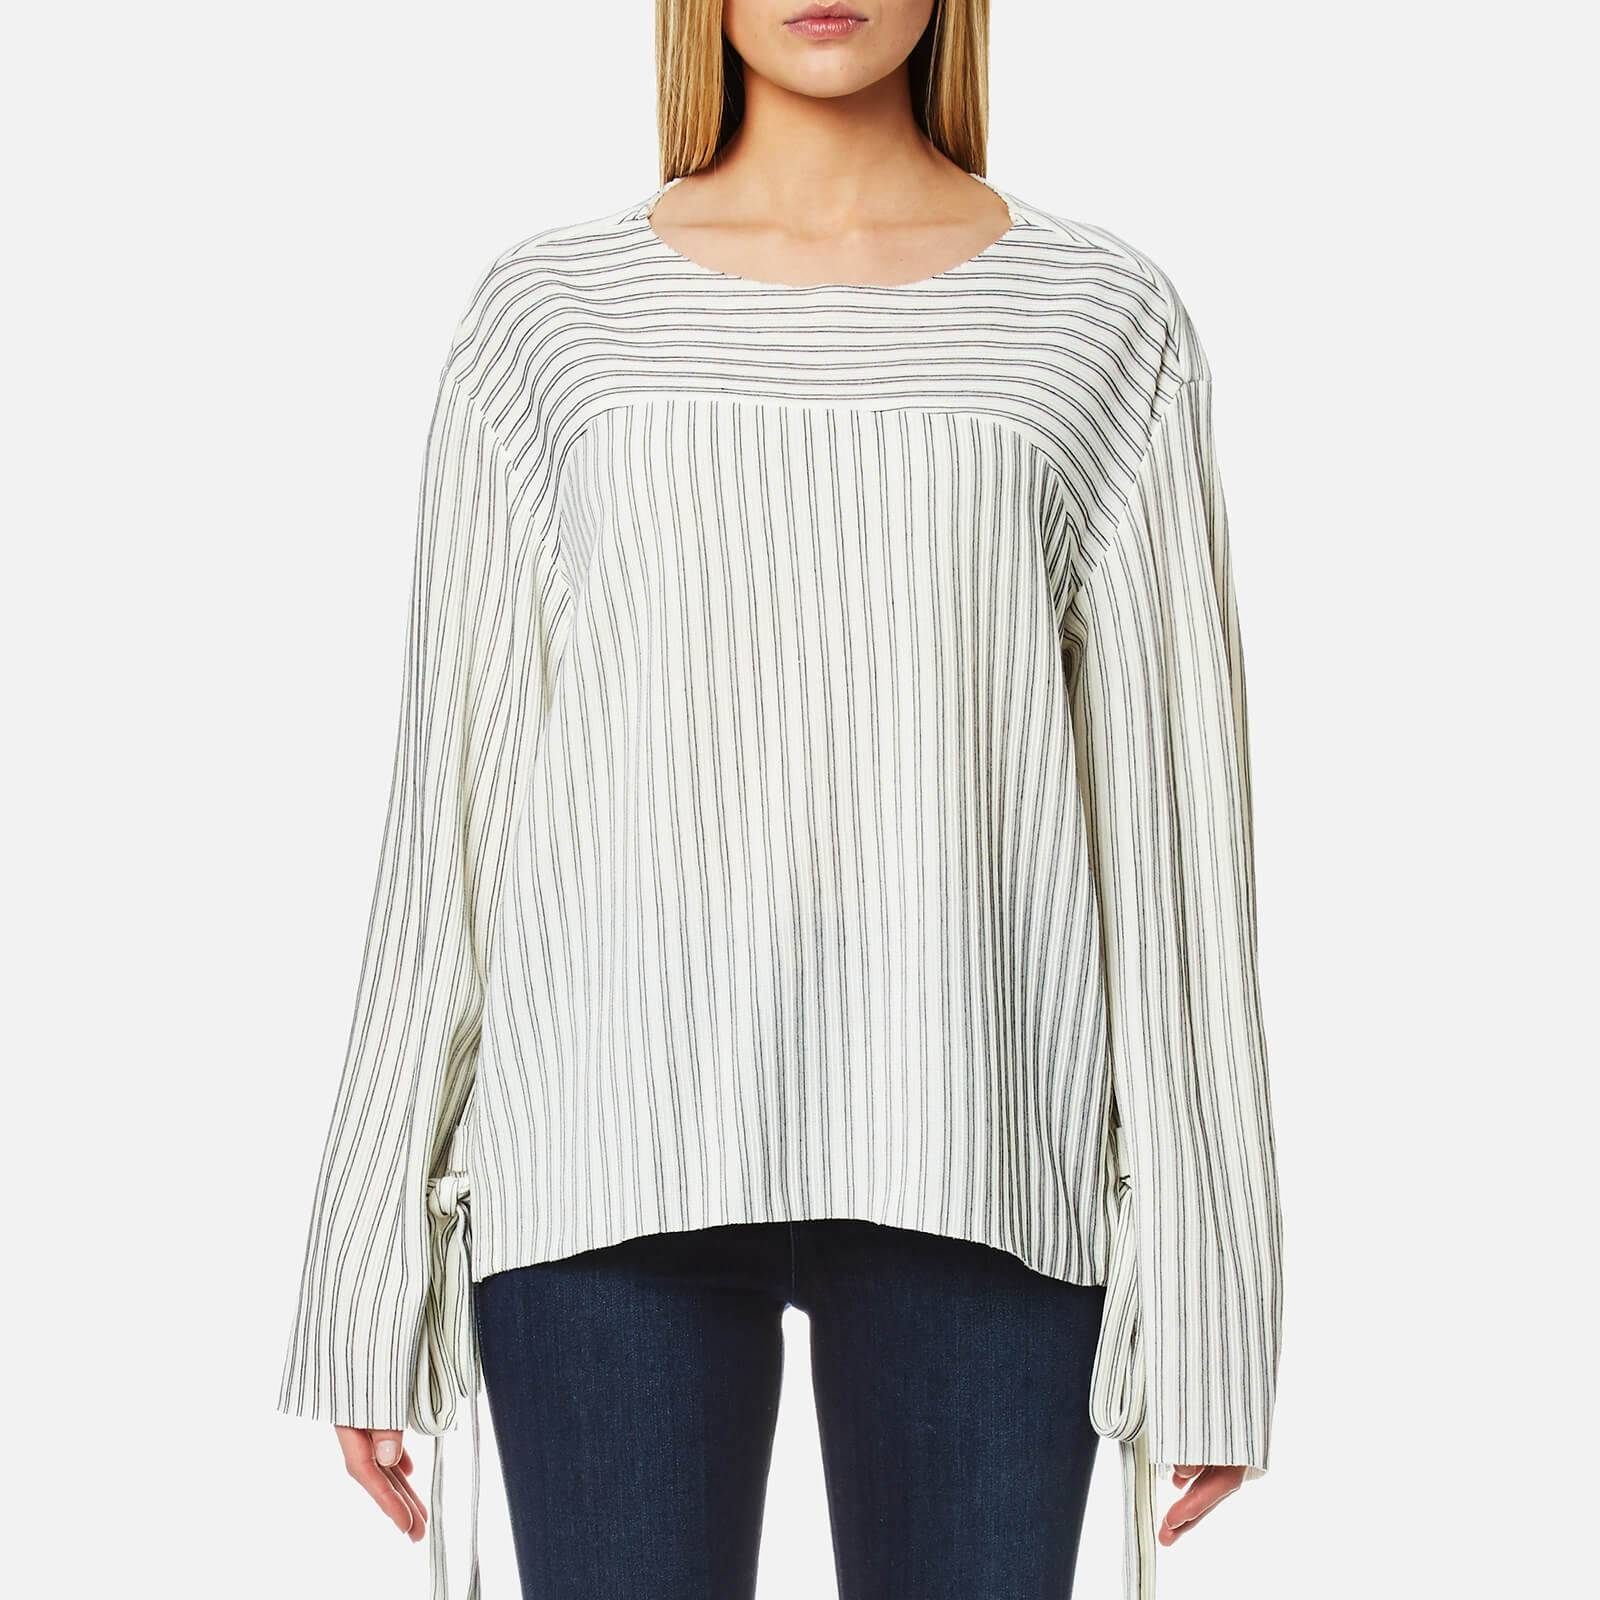 House of Sunny Women's Lace Up Stripe Top - Stripp - UK 8 - White